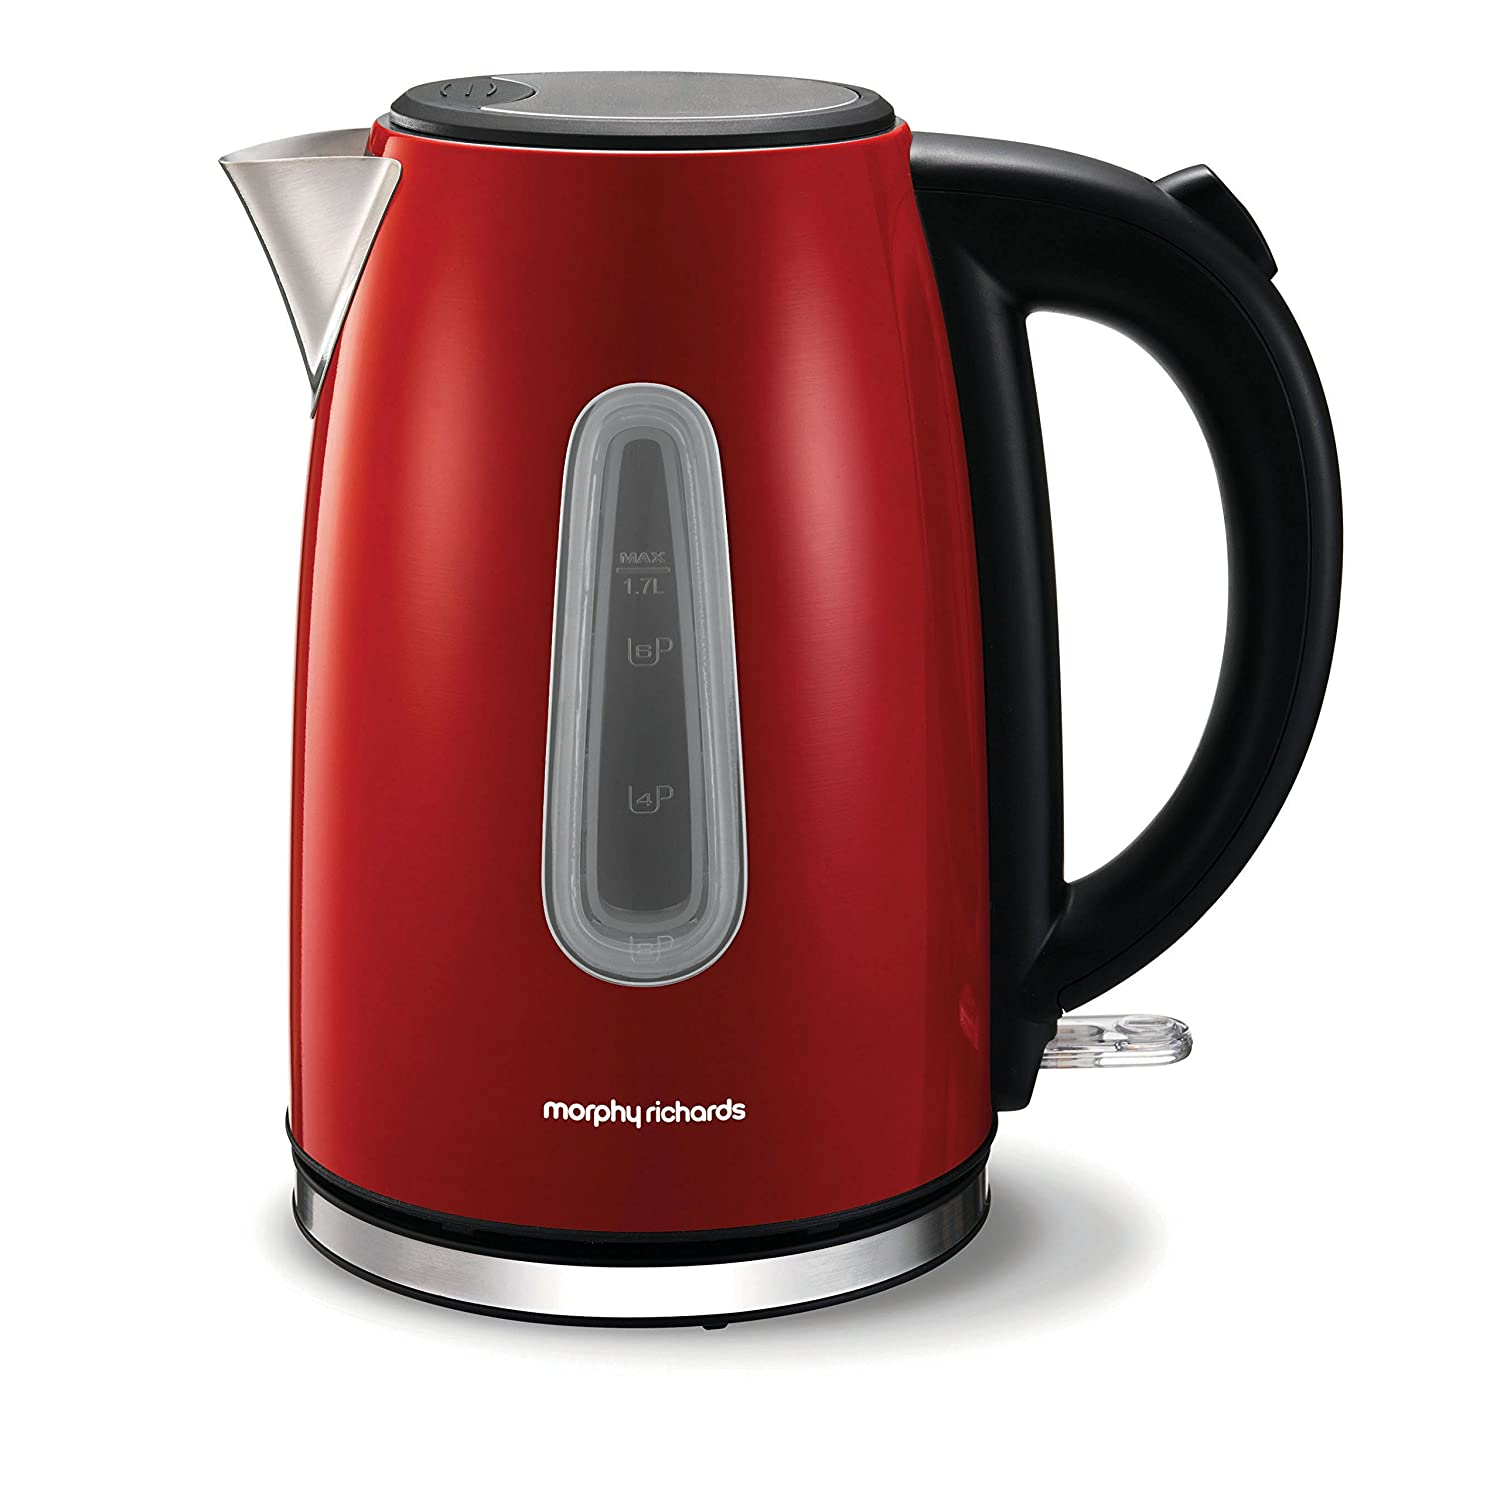 Morphy Richards Equip Jug Kettle 102775 Electric Kettle - Black Morphy Richards Kettle